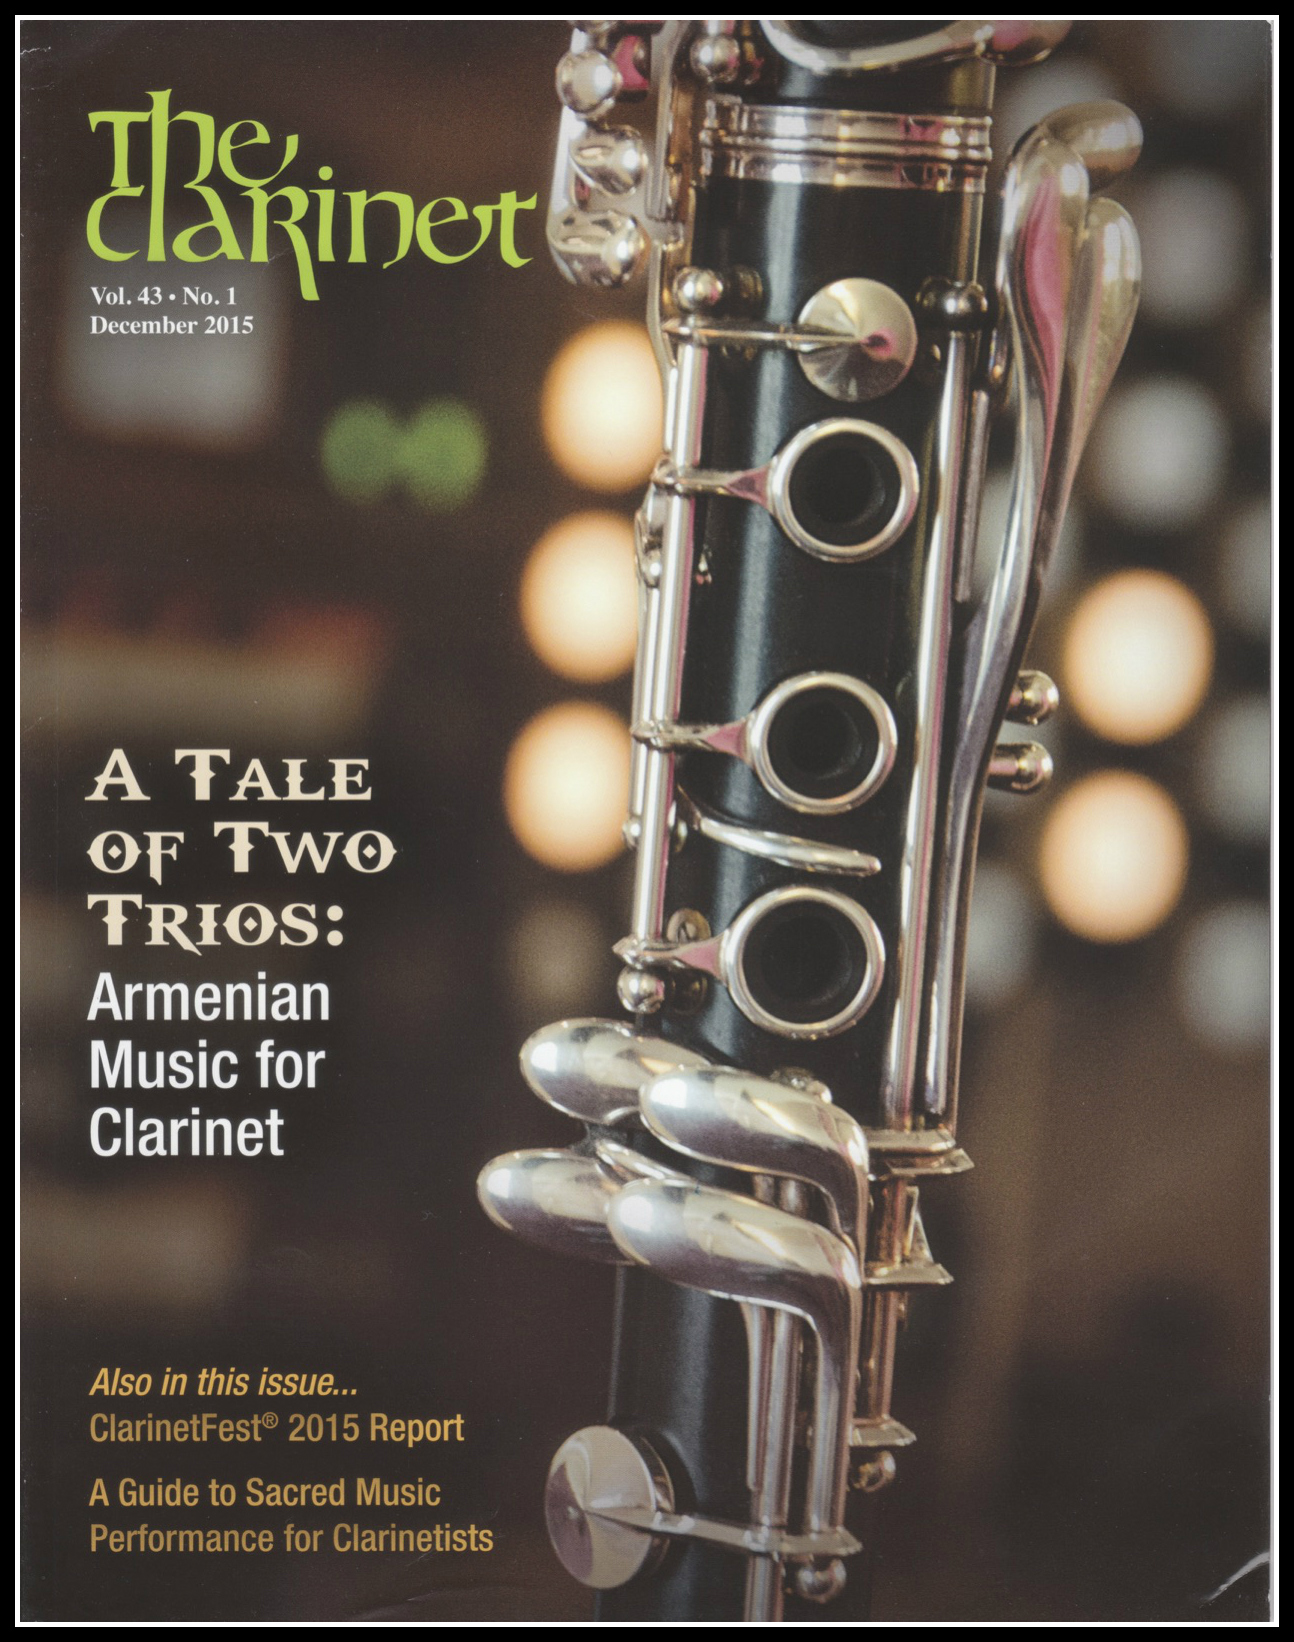 Click  here  to read the full review of  Squeak Big  in  The Clarinet  (the journal of the International Clarinet Association).